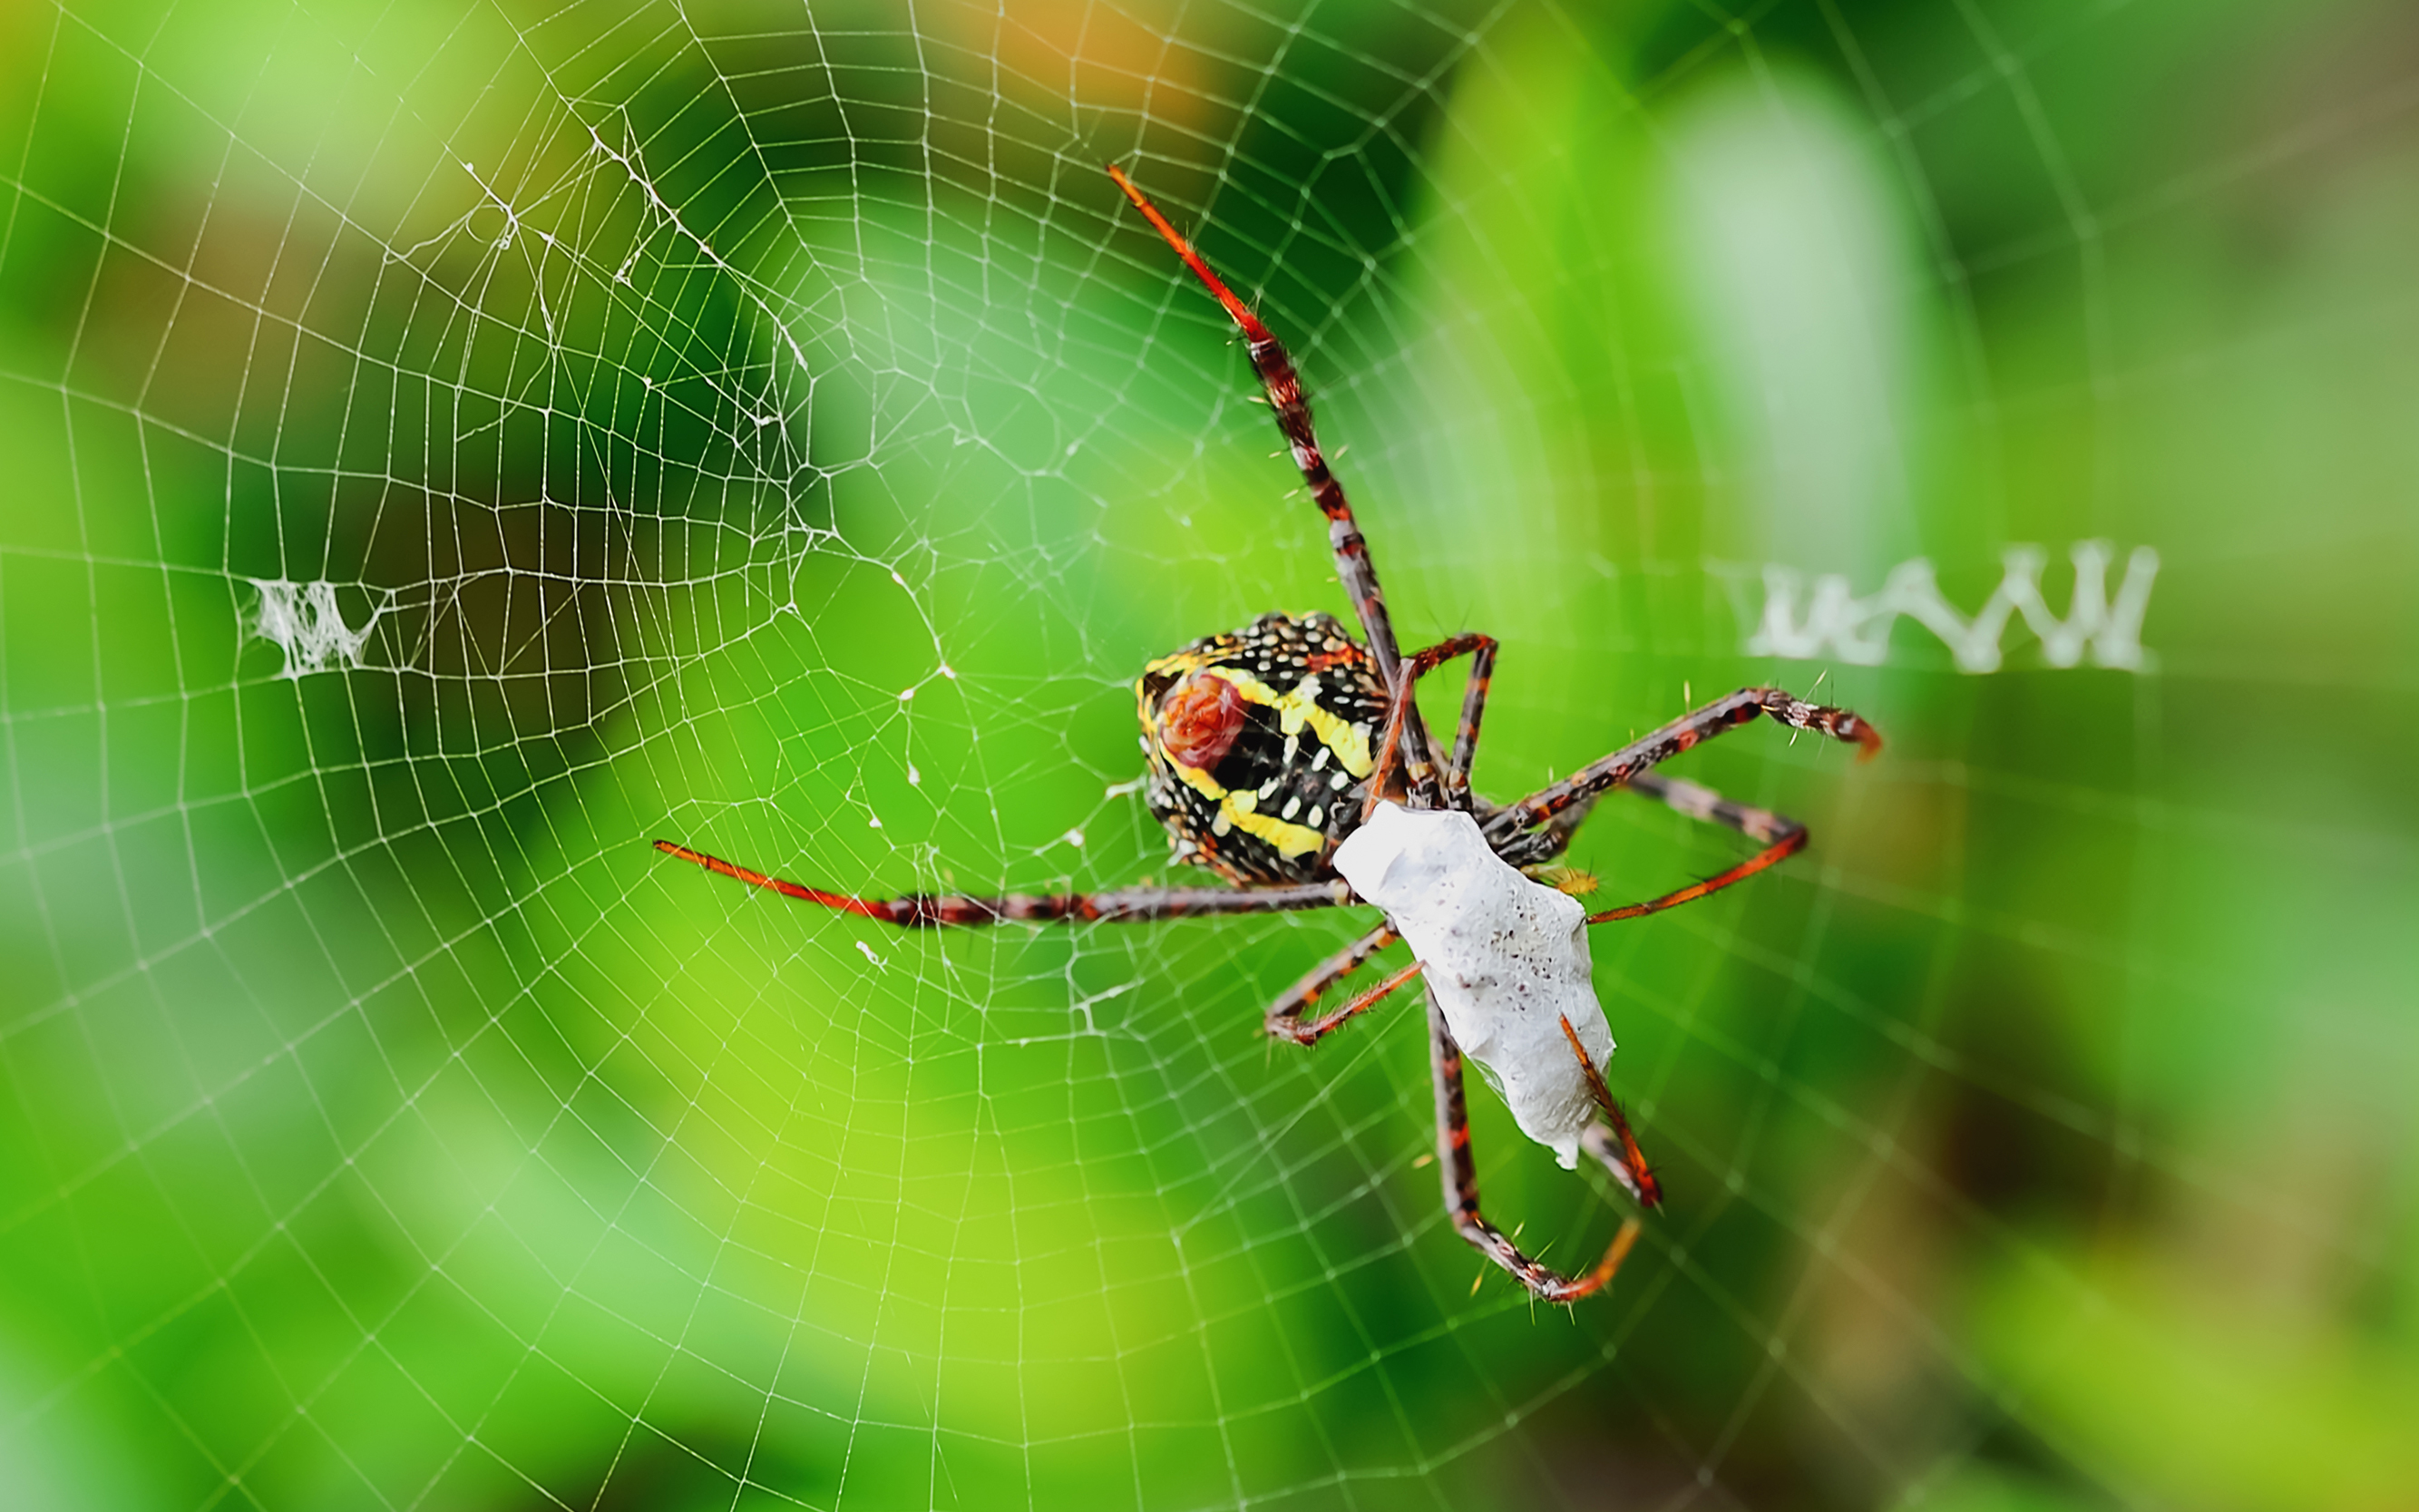 Spiders Eat Millions of Insects Every Year